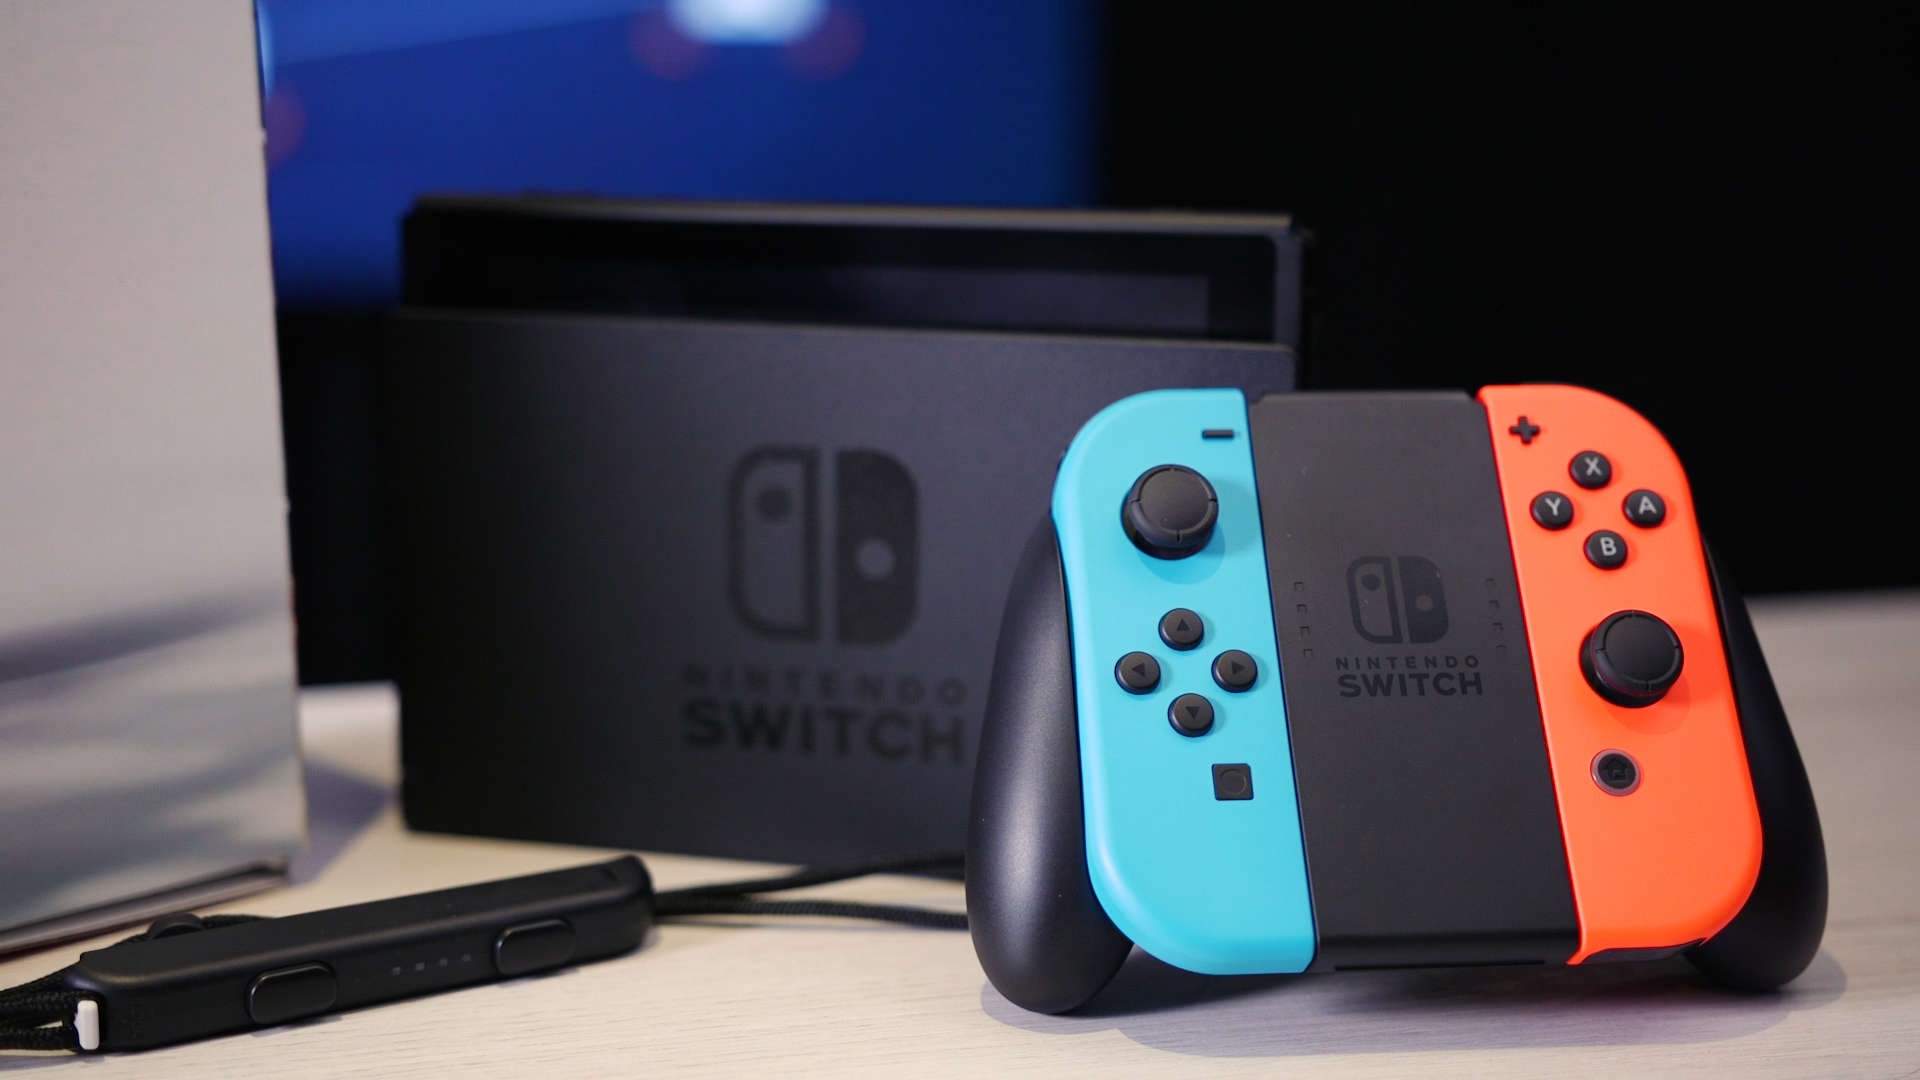 Nintendo Switch Pro supporterà il DLSS? Ecco il report di Bloomberg